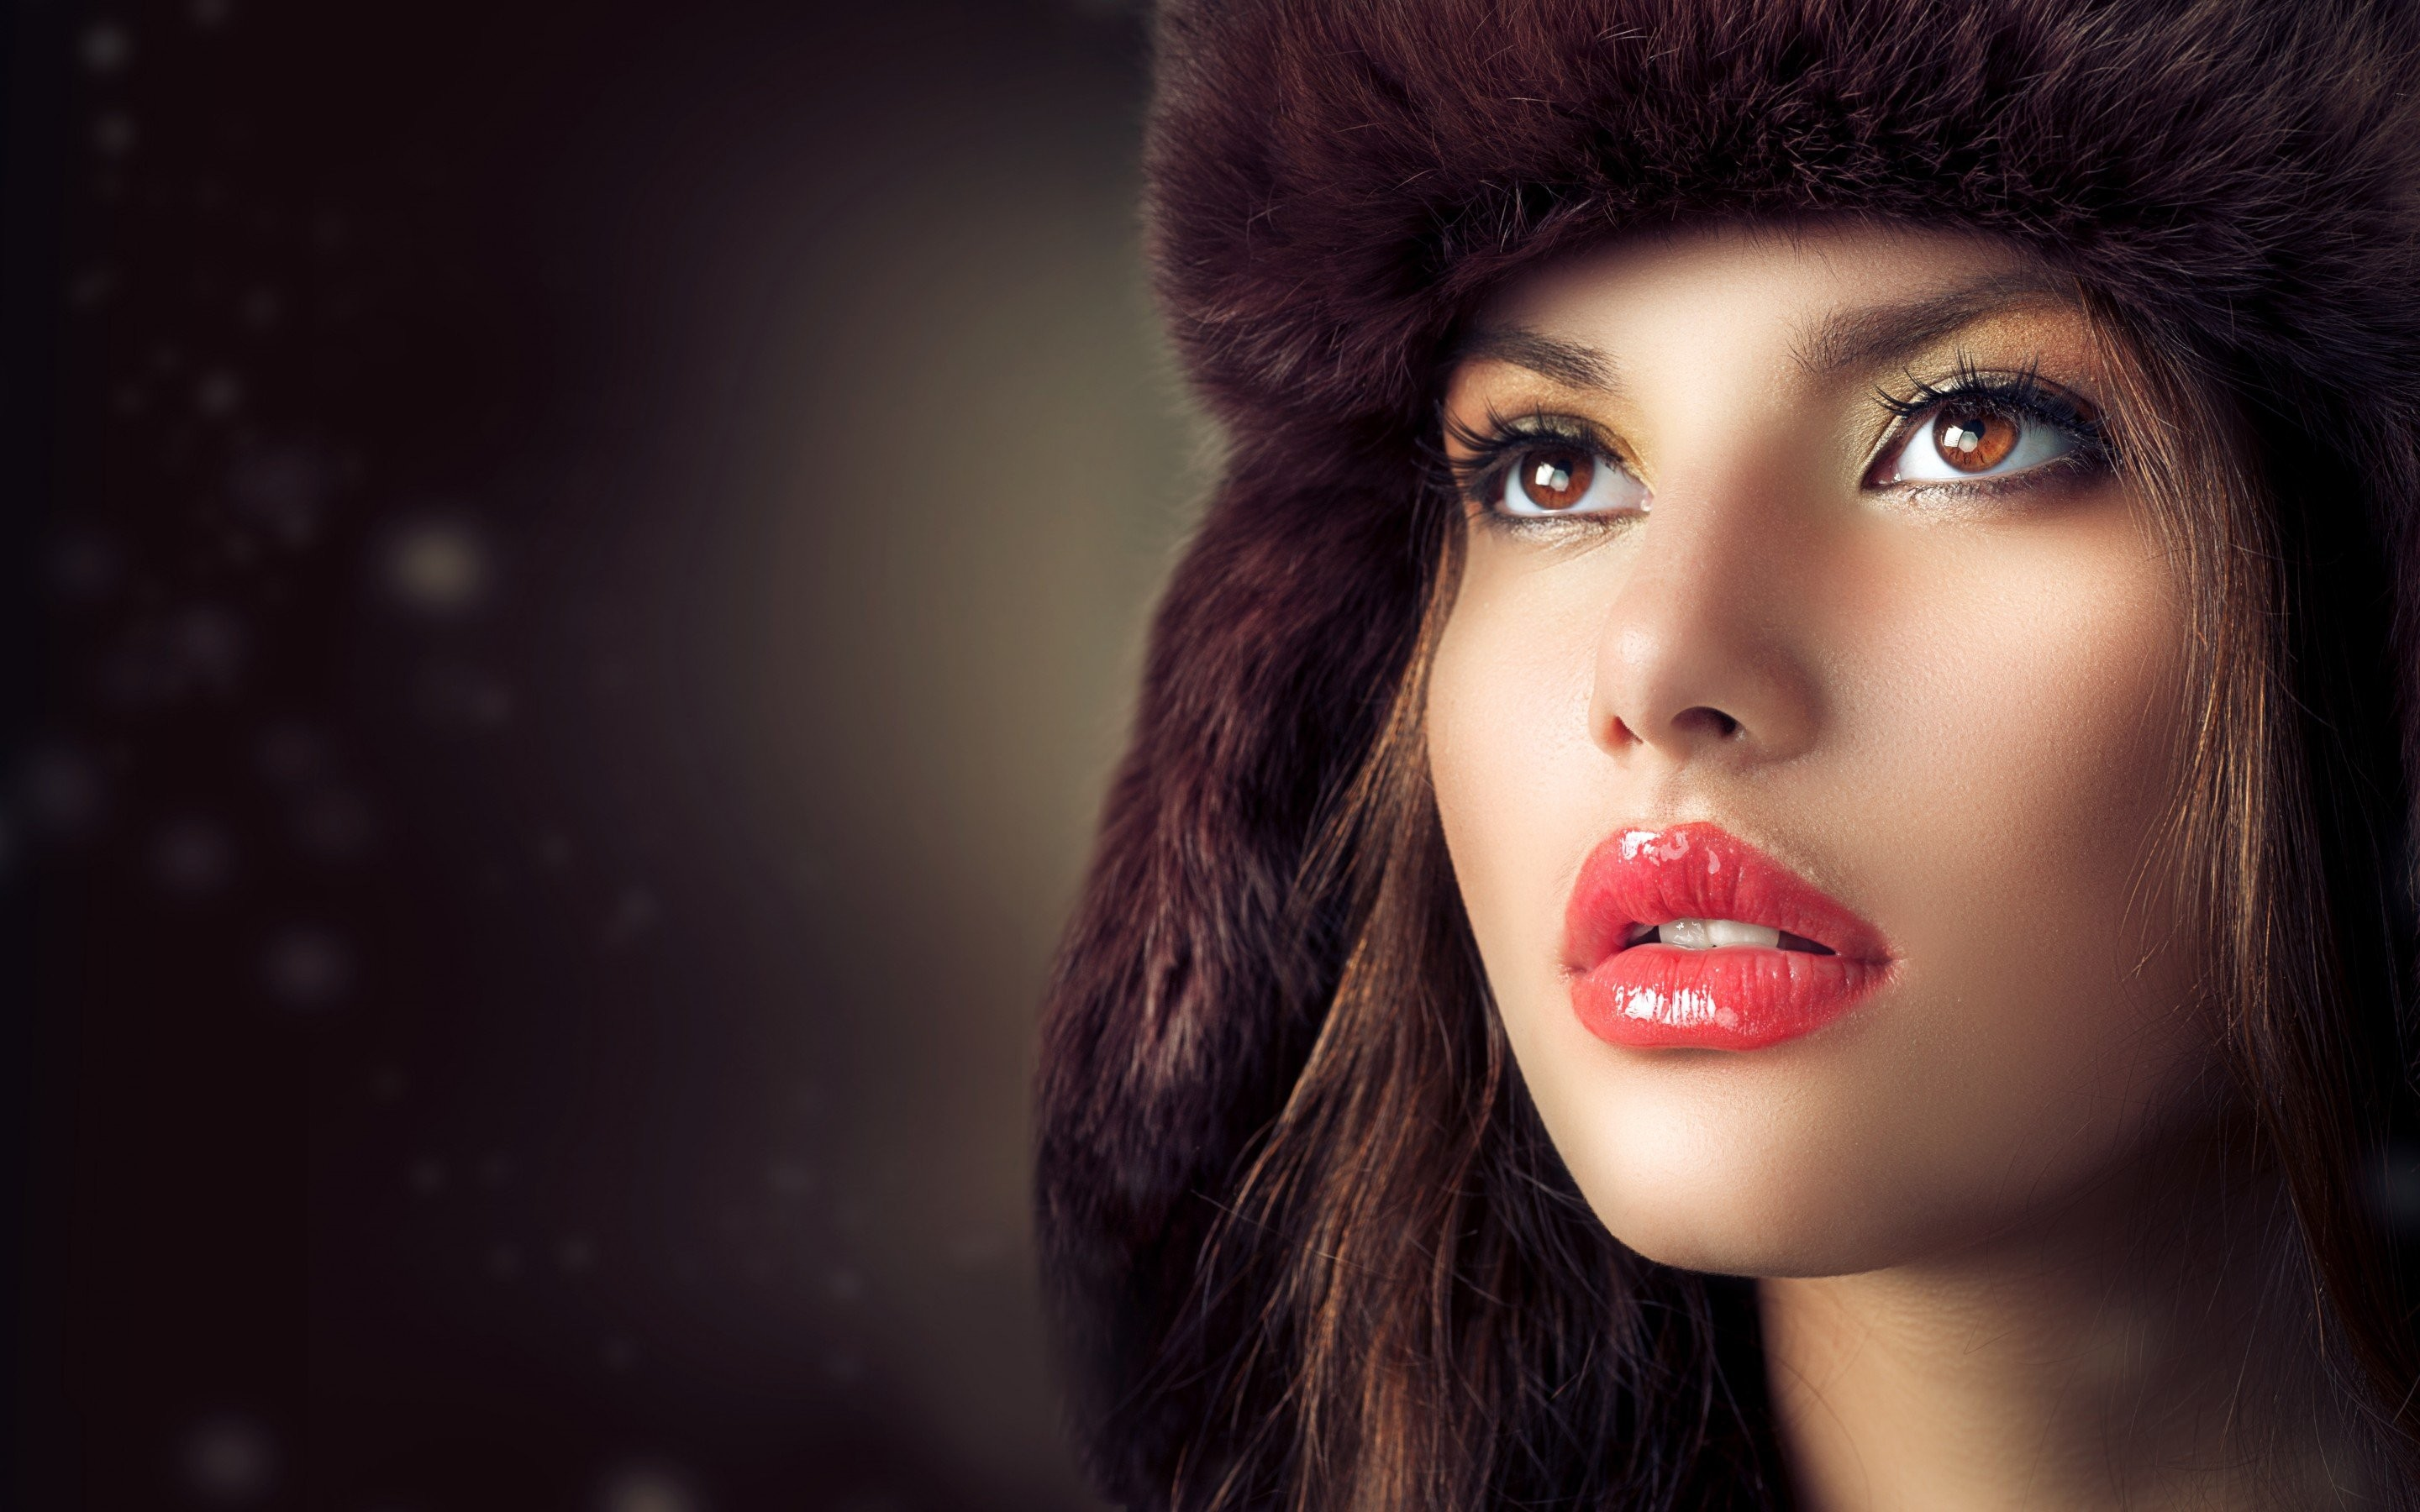 4575476 juicy lips open mouth funny hats hat face model 2880x1800